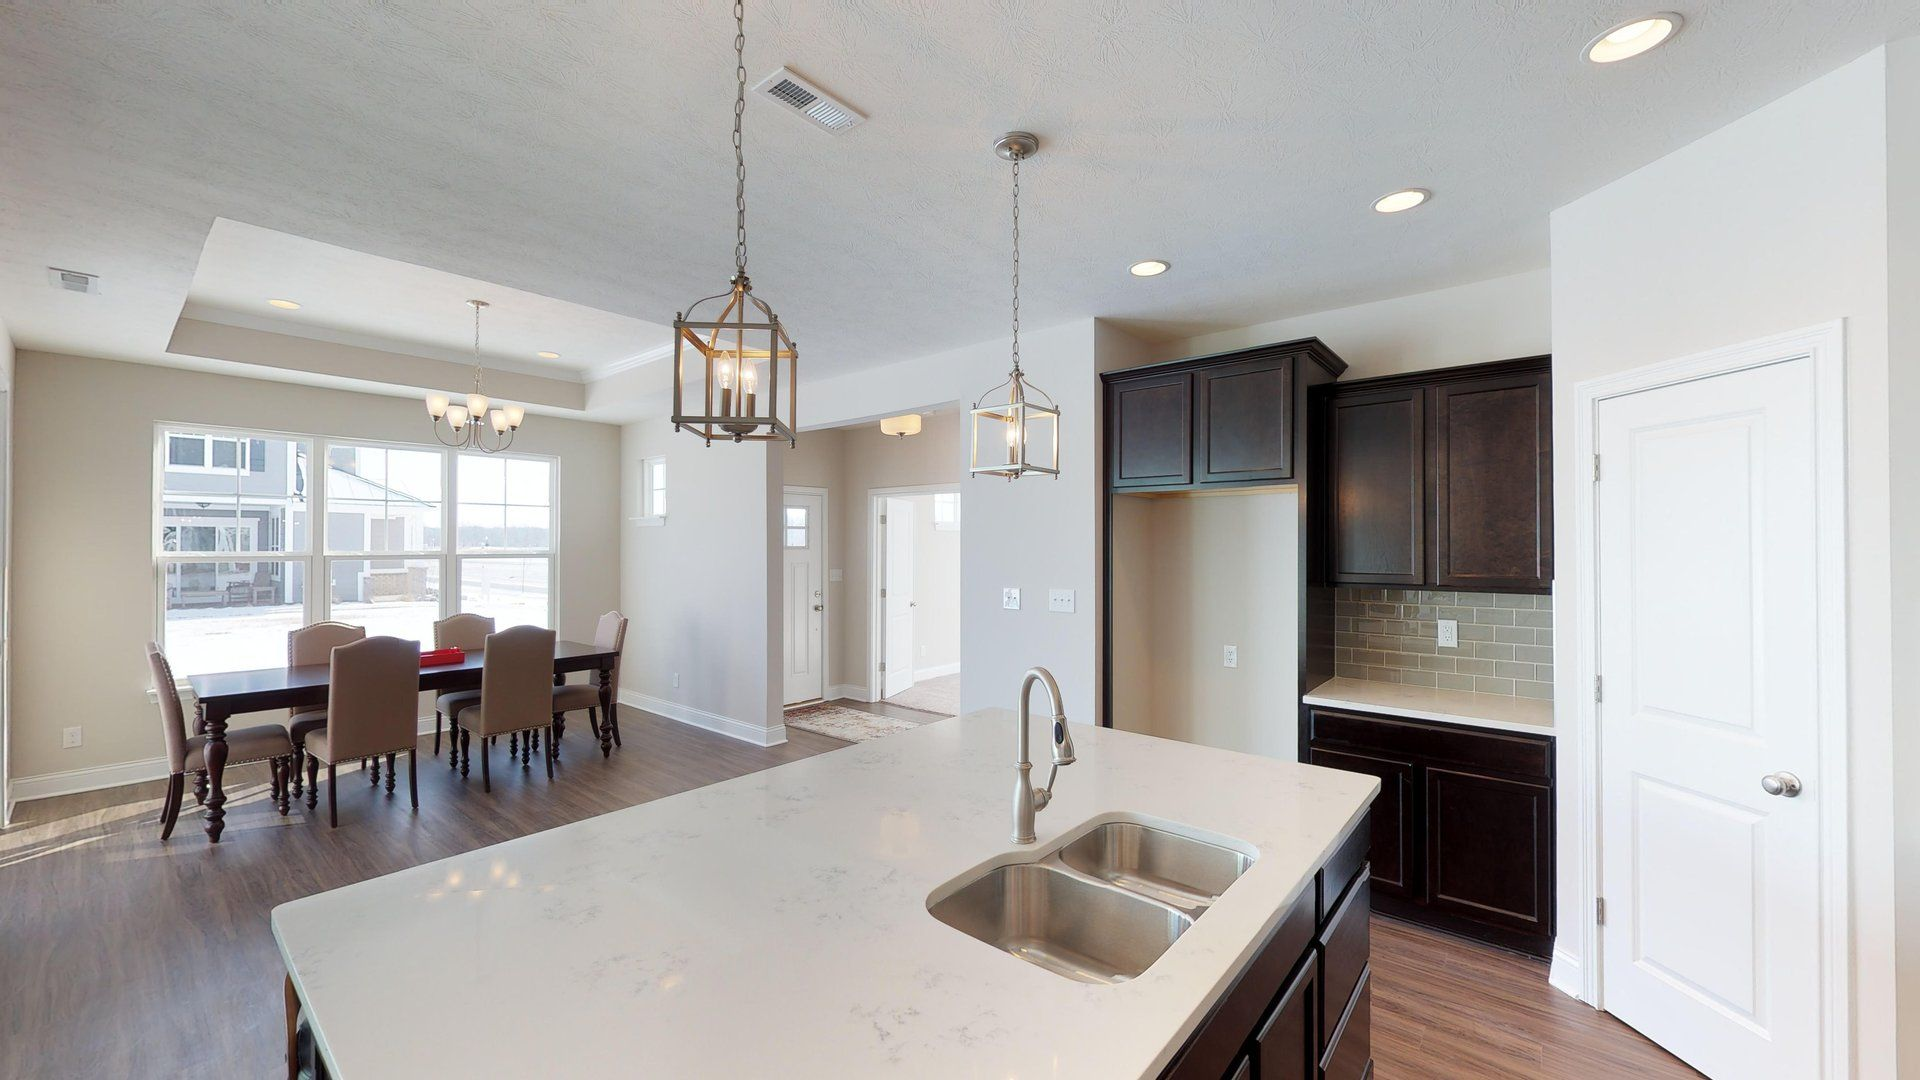 Kitchen featured in the Austin By Finecraft in Indianapolis, IN